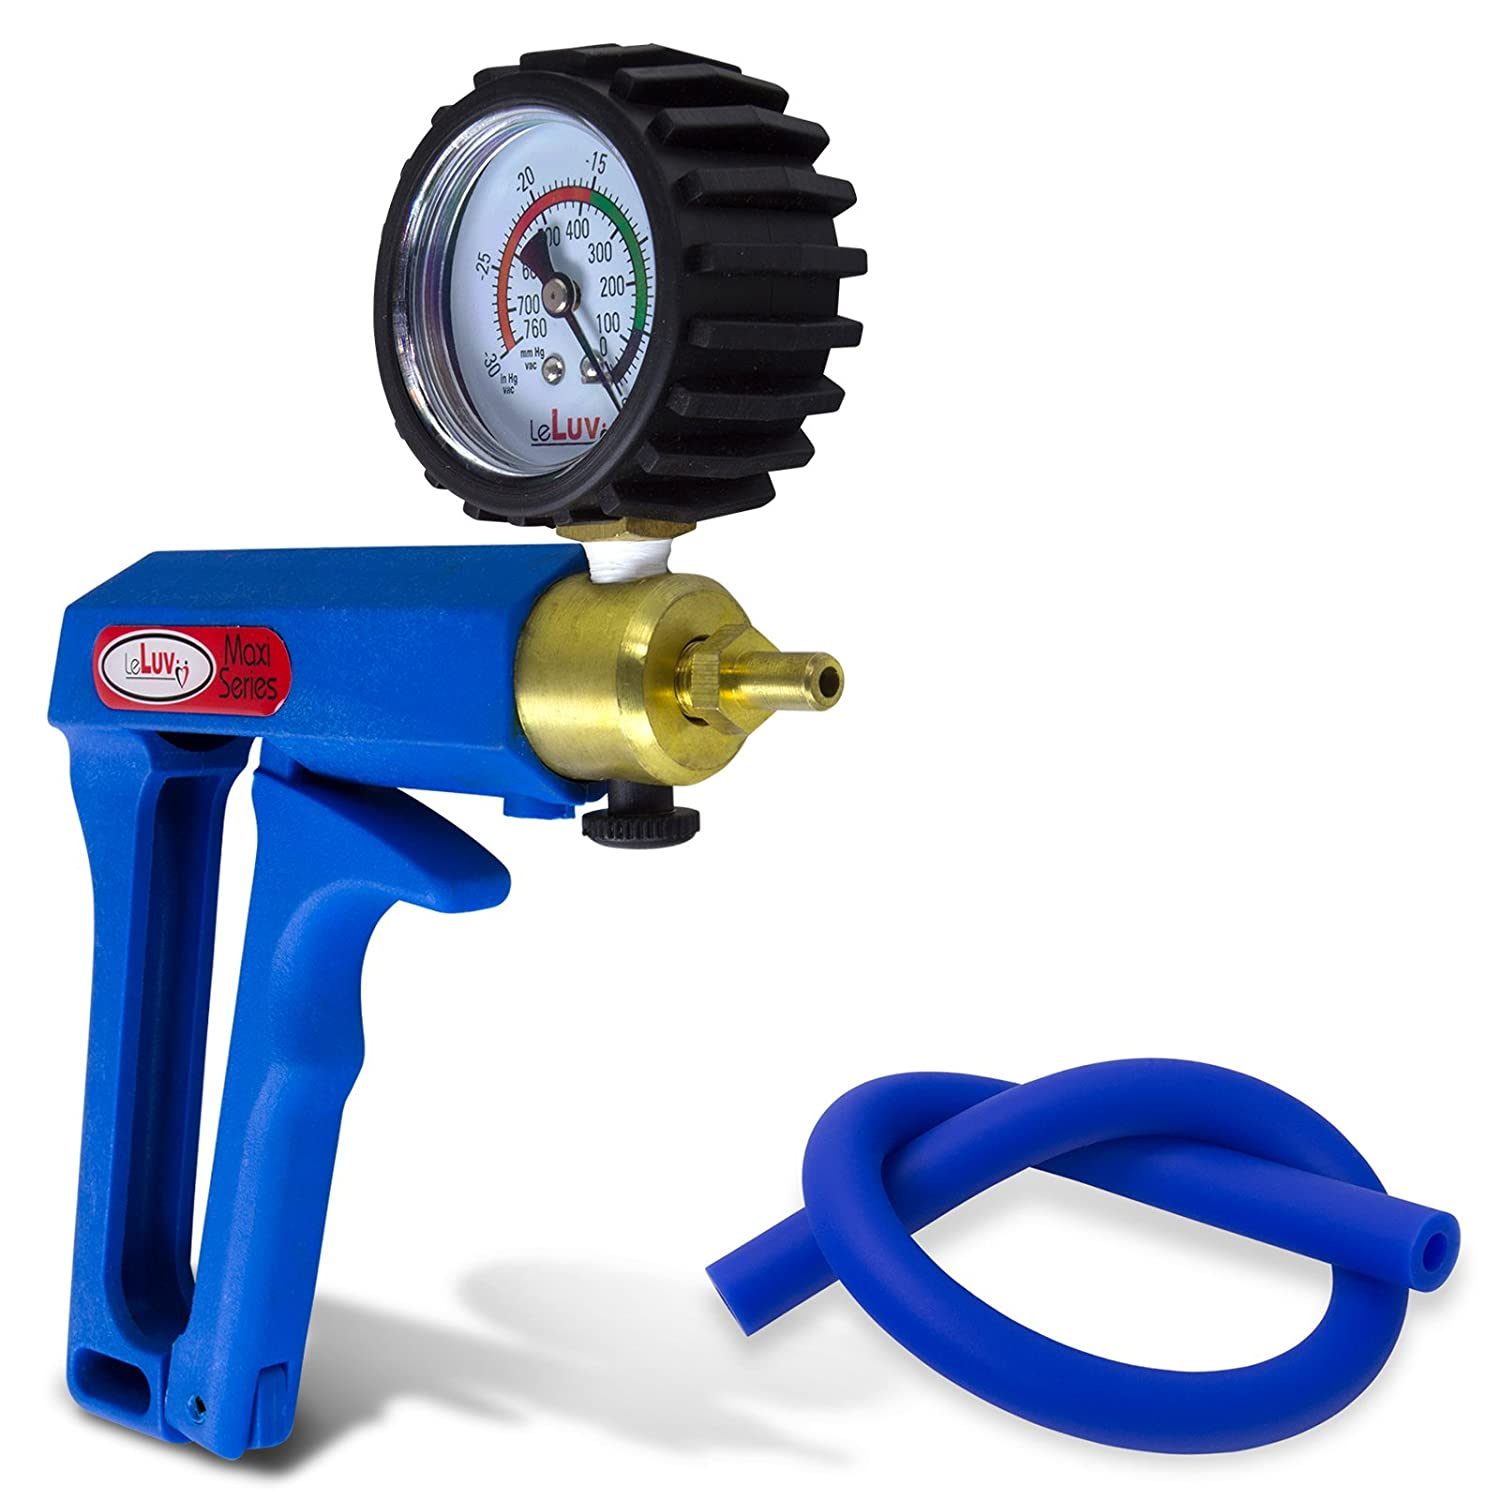 LeLuv Vacuum Pump Blue Maxi Ergonomic Handle with Protected Gauge with Release Valve with Matching Premium Silicone Hose